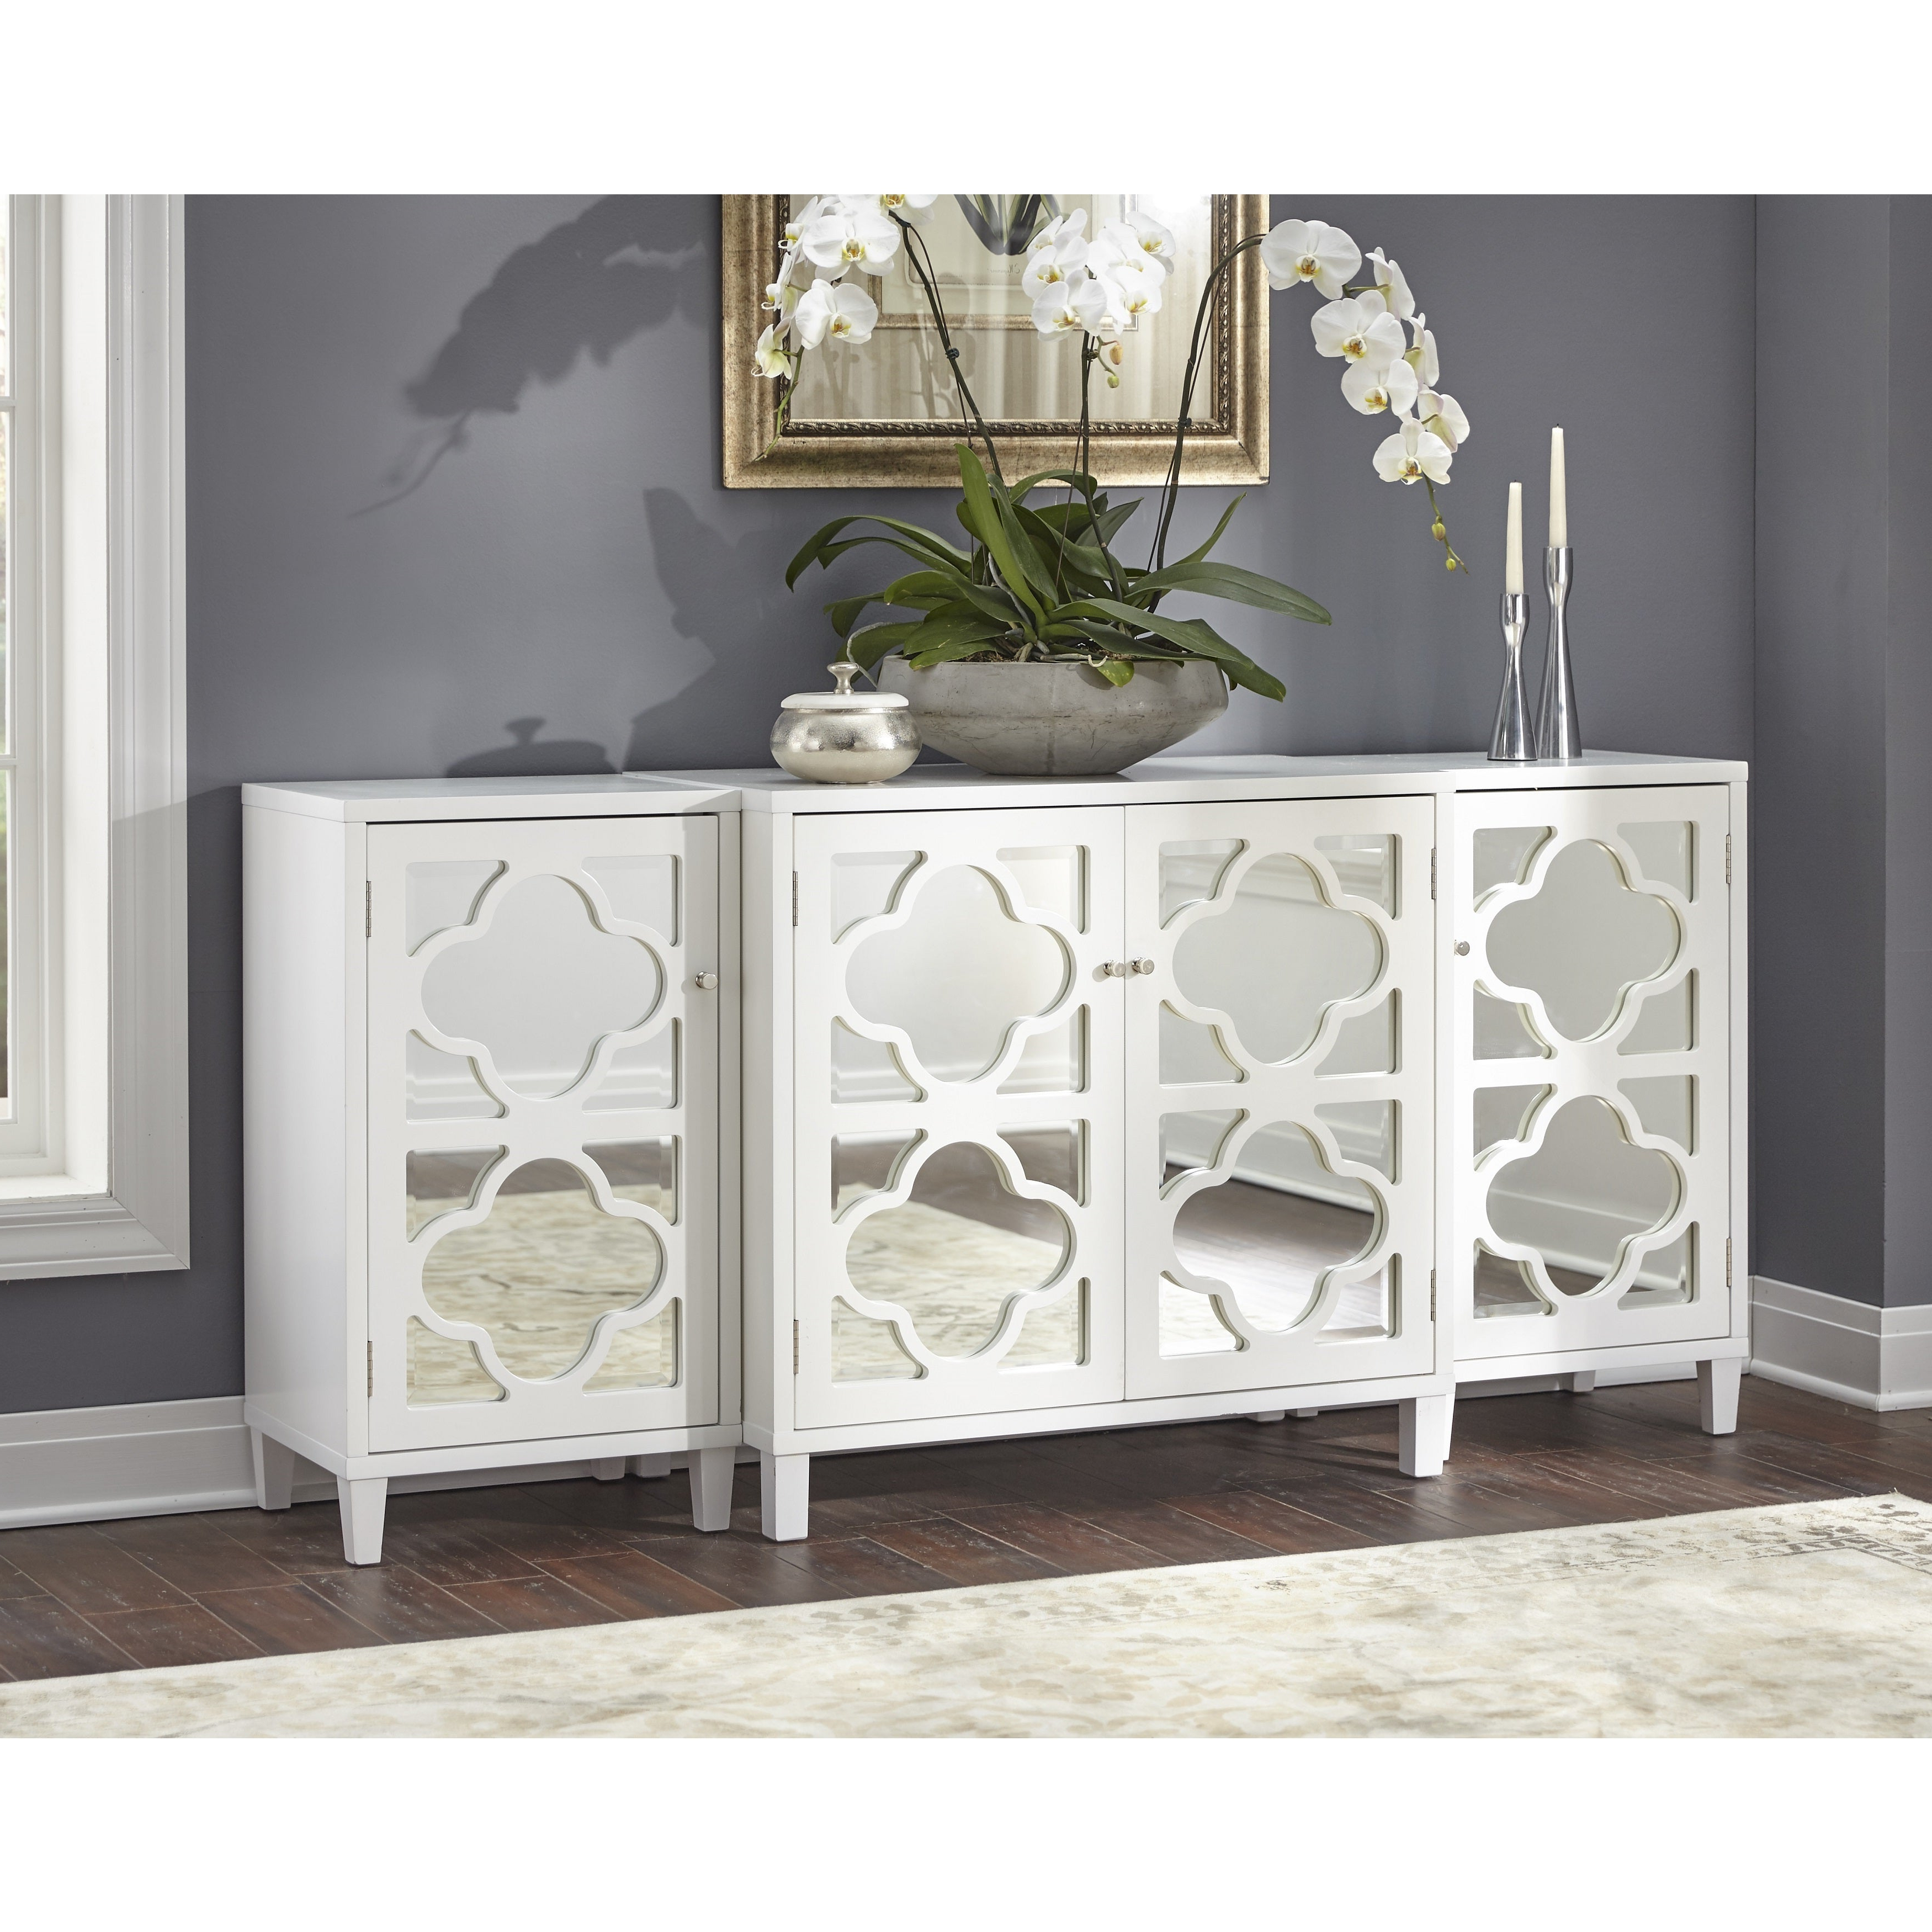 Details About Buffet Storage Cabinet Sideboard Entryway Tv Stand 3 Pcs Set  Mirrored Furniture Throughout Mirrored Double Door Buffets (View 6 of 20)